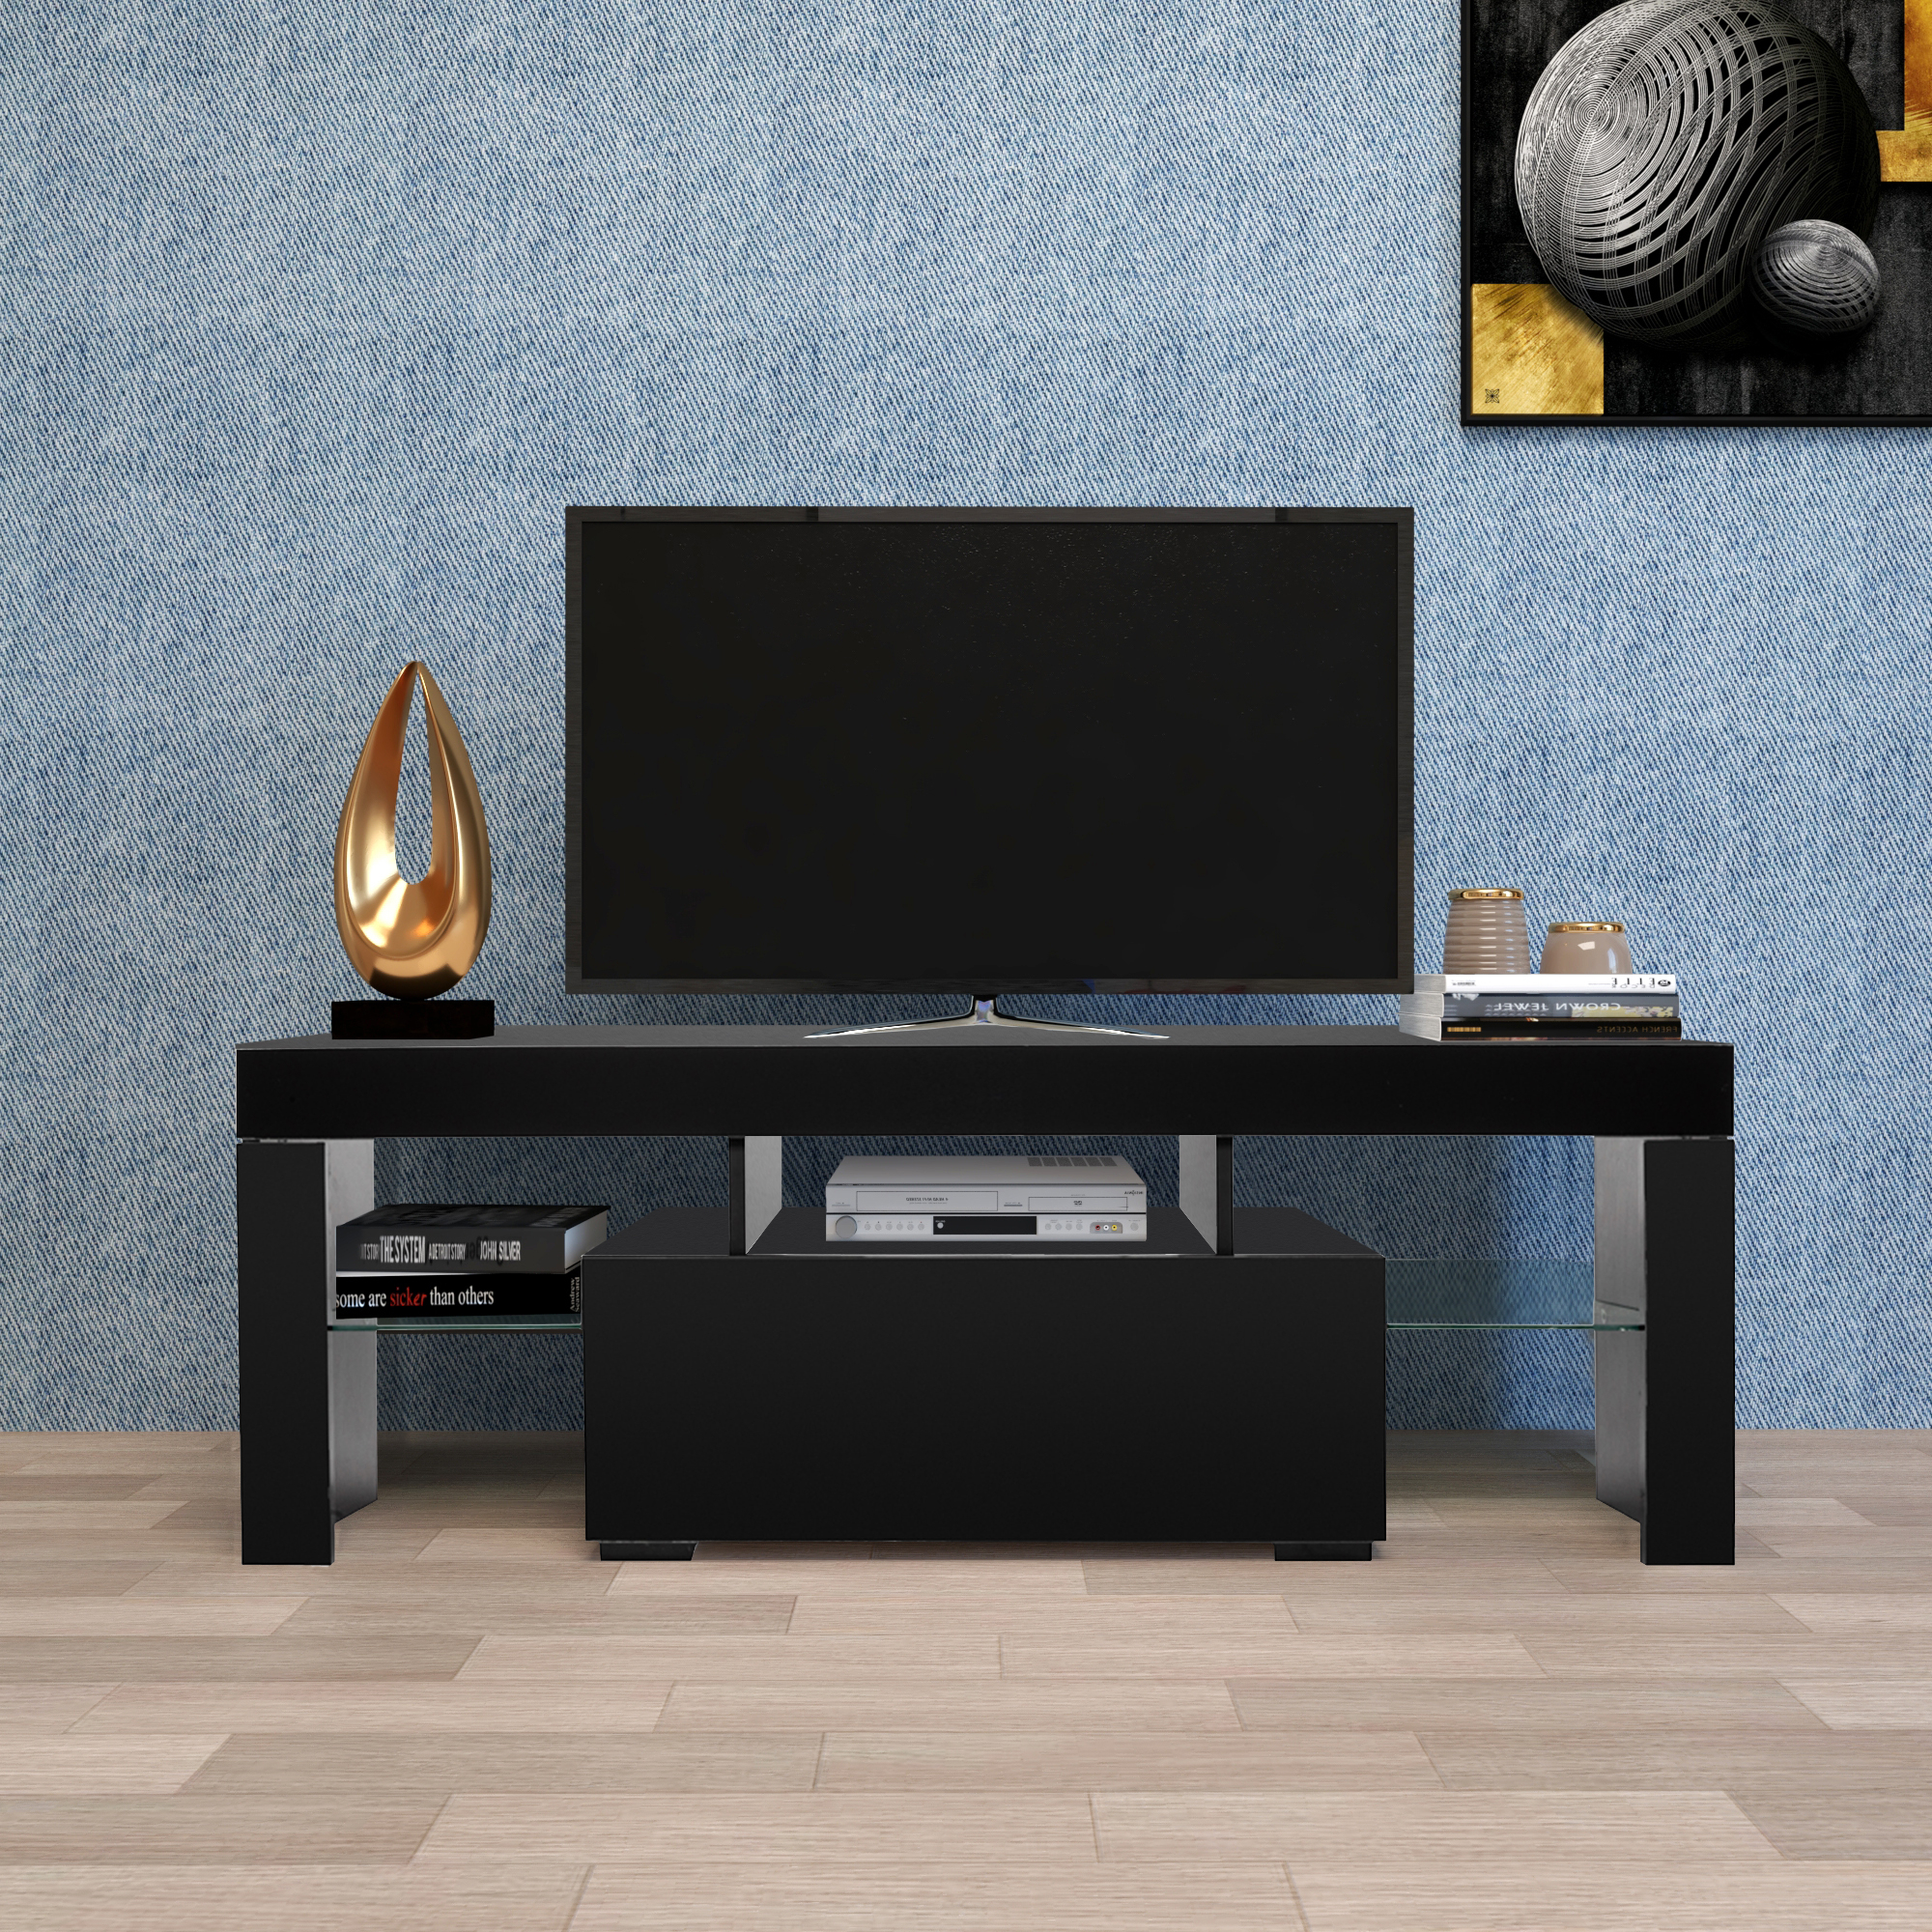 Zimtown Tv Stands With High Gloss Led Lights Intended For Well Known Entertainment Centers And Tv Stands, Yofe Tv Stand With (View 7 of 10)